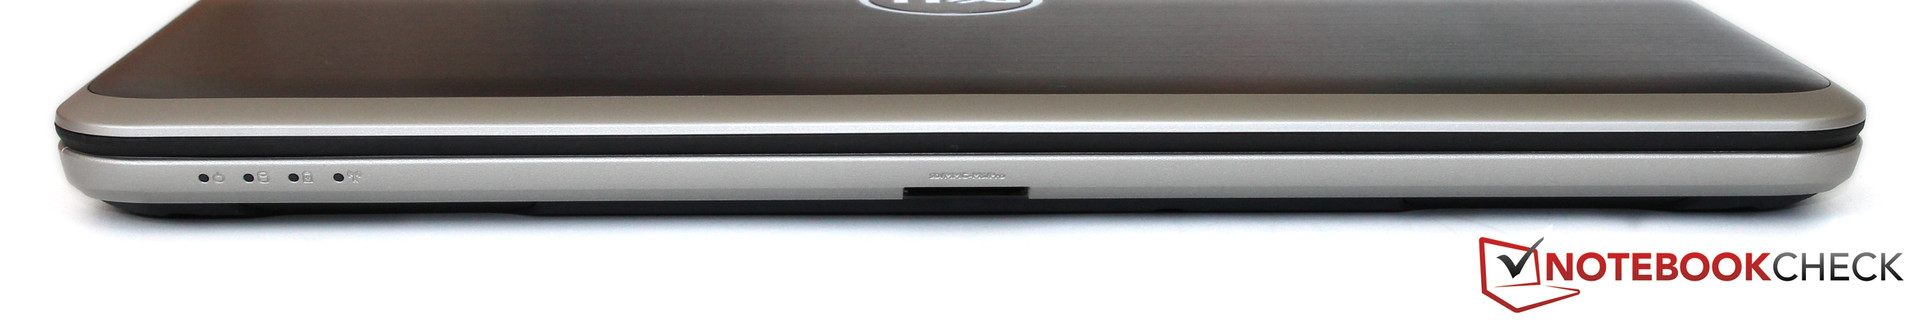 Review Dell Inspiron 15R-5537 Notebook - NotebookCheck net